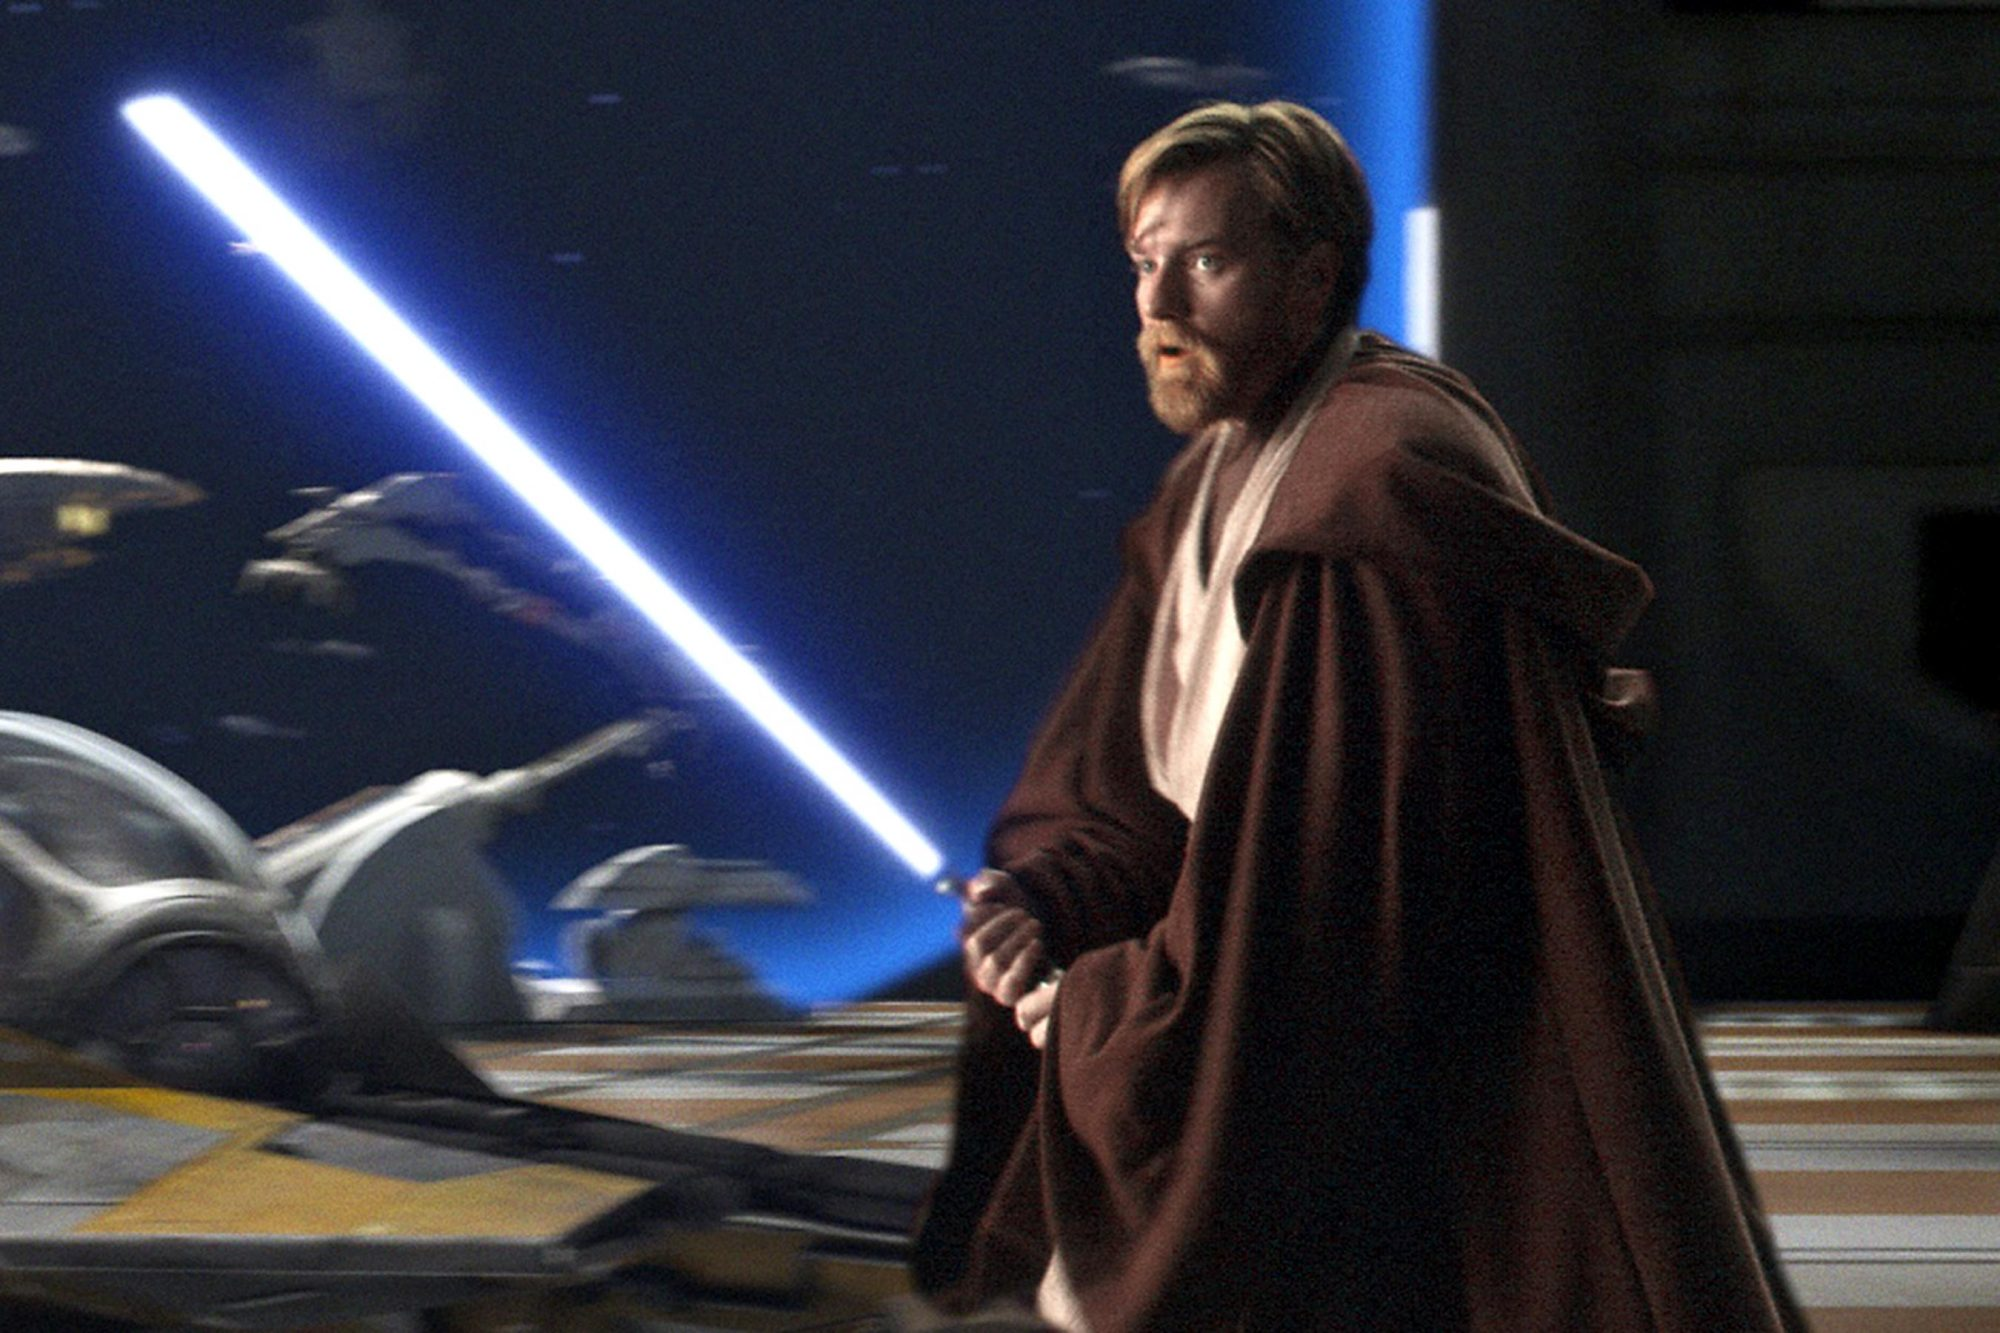 George Lucas Cut The Best Star Wars Lightsaber Fight From The Prequels Ew Com